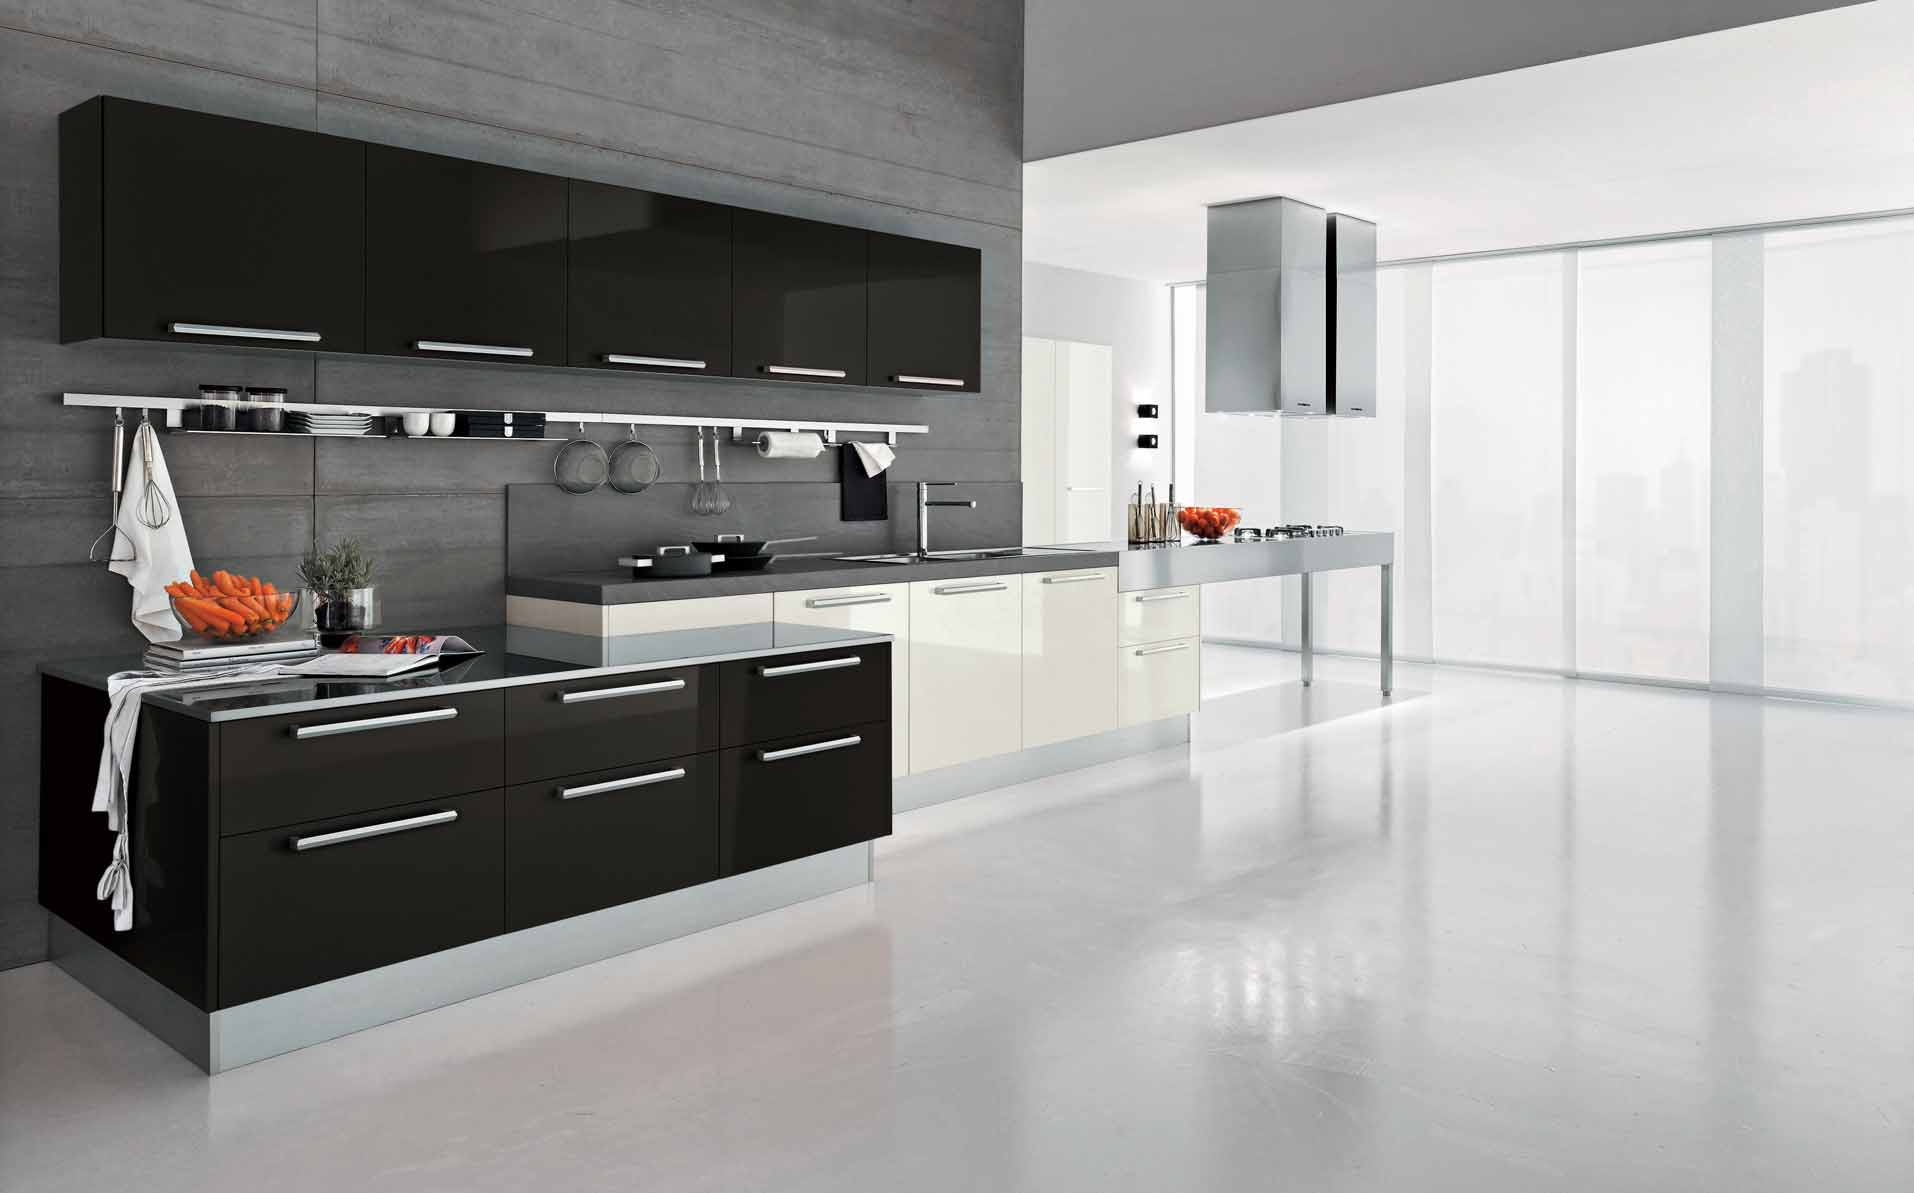 Elegant Kitchens From In Toto Mereway And Burbidge Kitchen Sourcebook With  Small Modern Kitchen Ideas Part 18